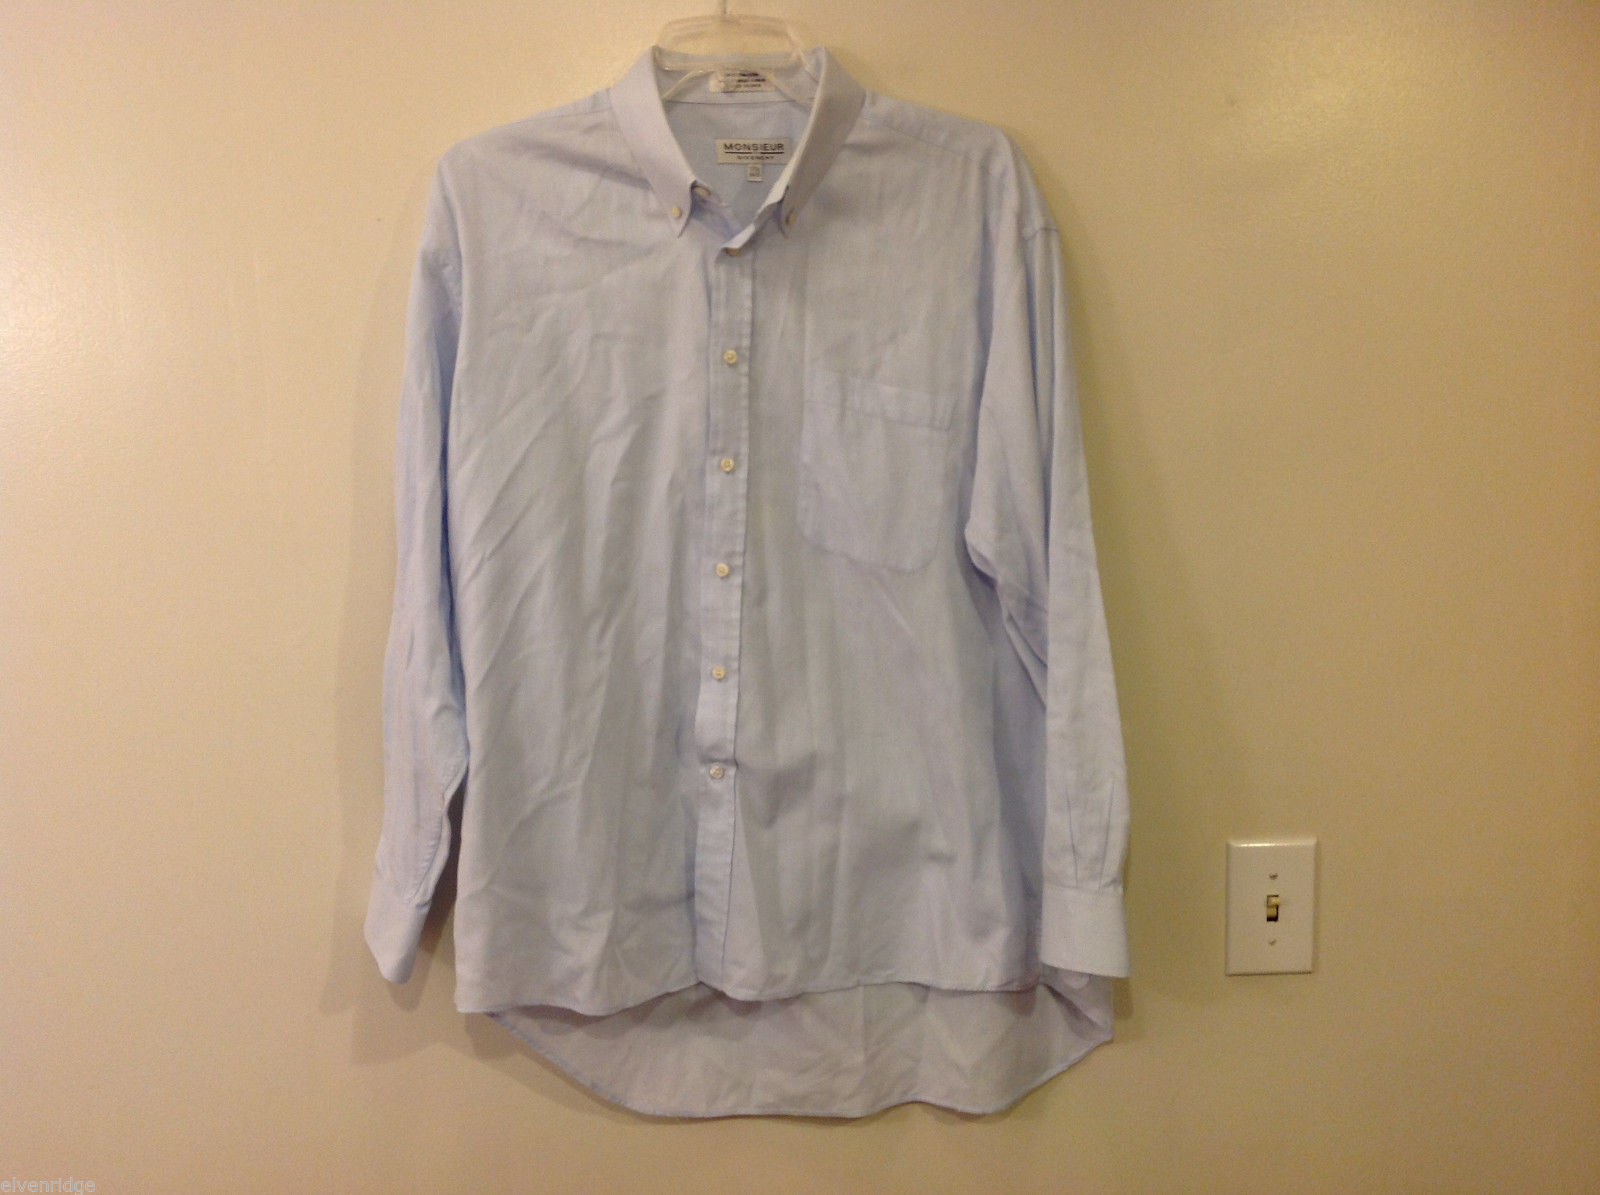 "Monsieur by Givenchy Men's Size 2XL Shirt Button-Down 17 1/2"" Collar Light Blue"